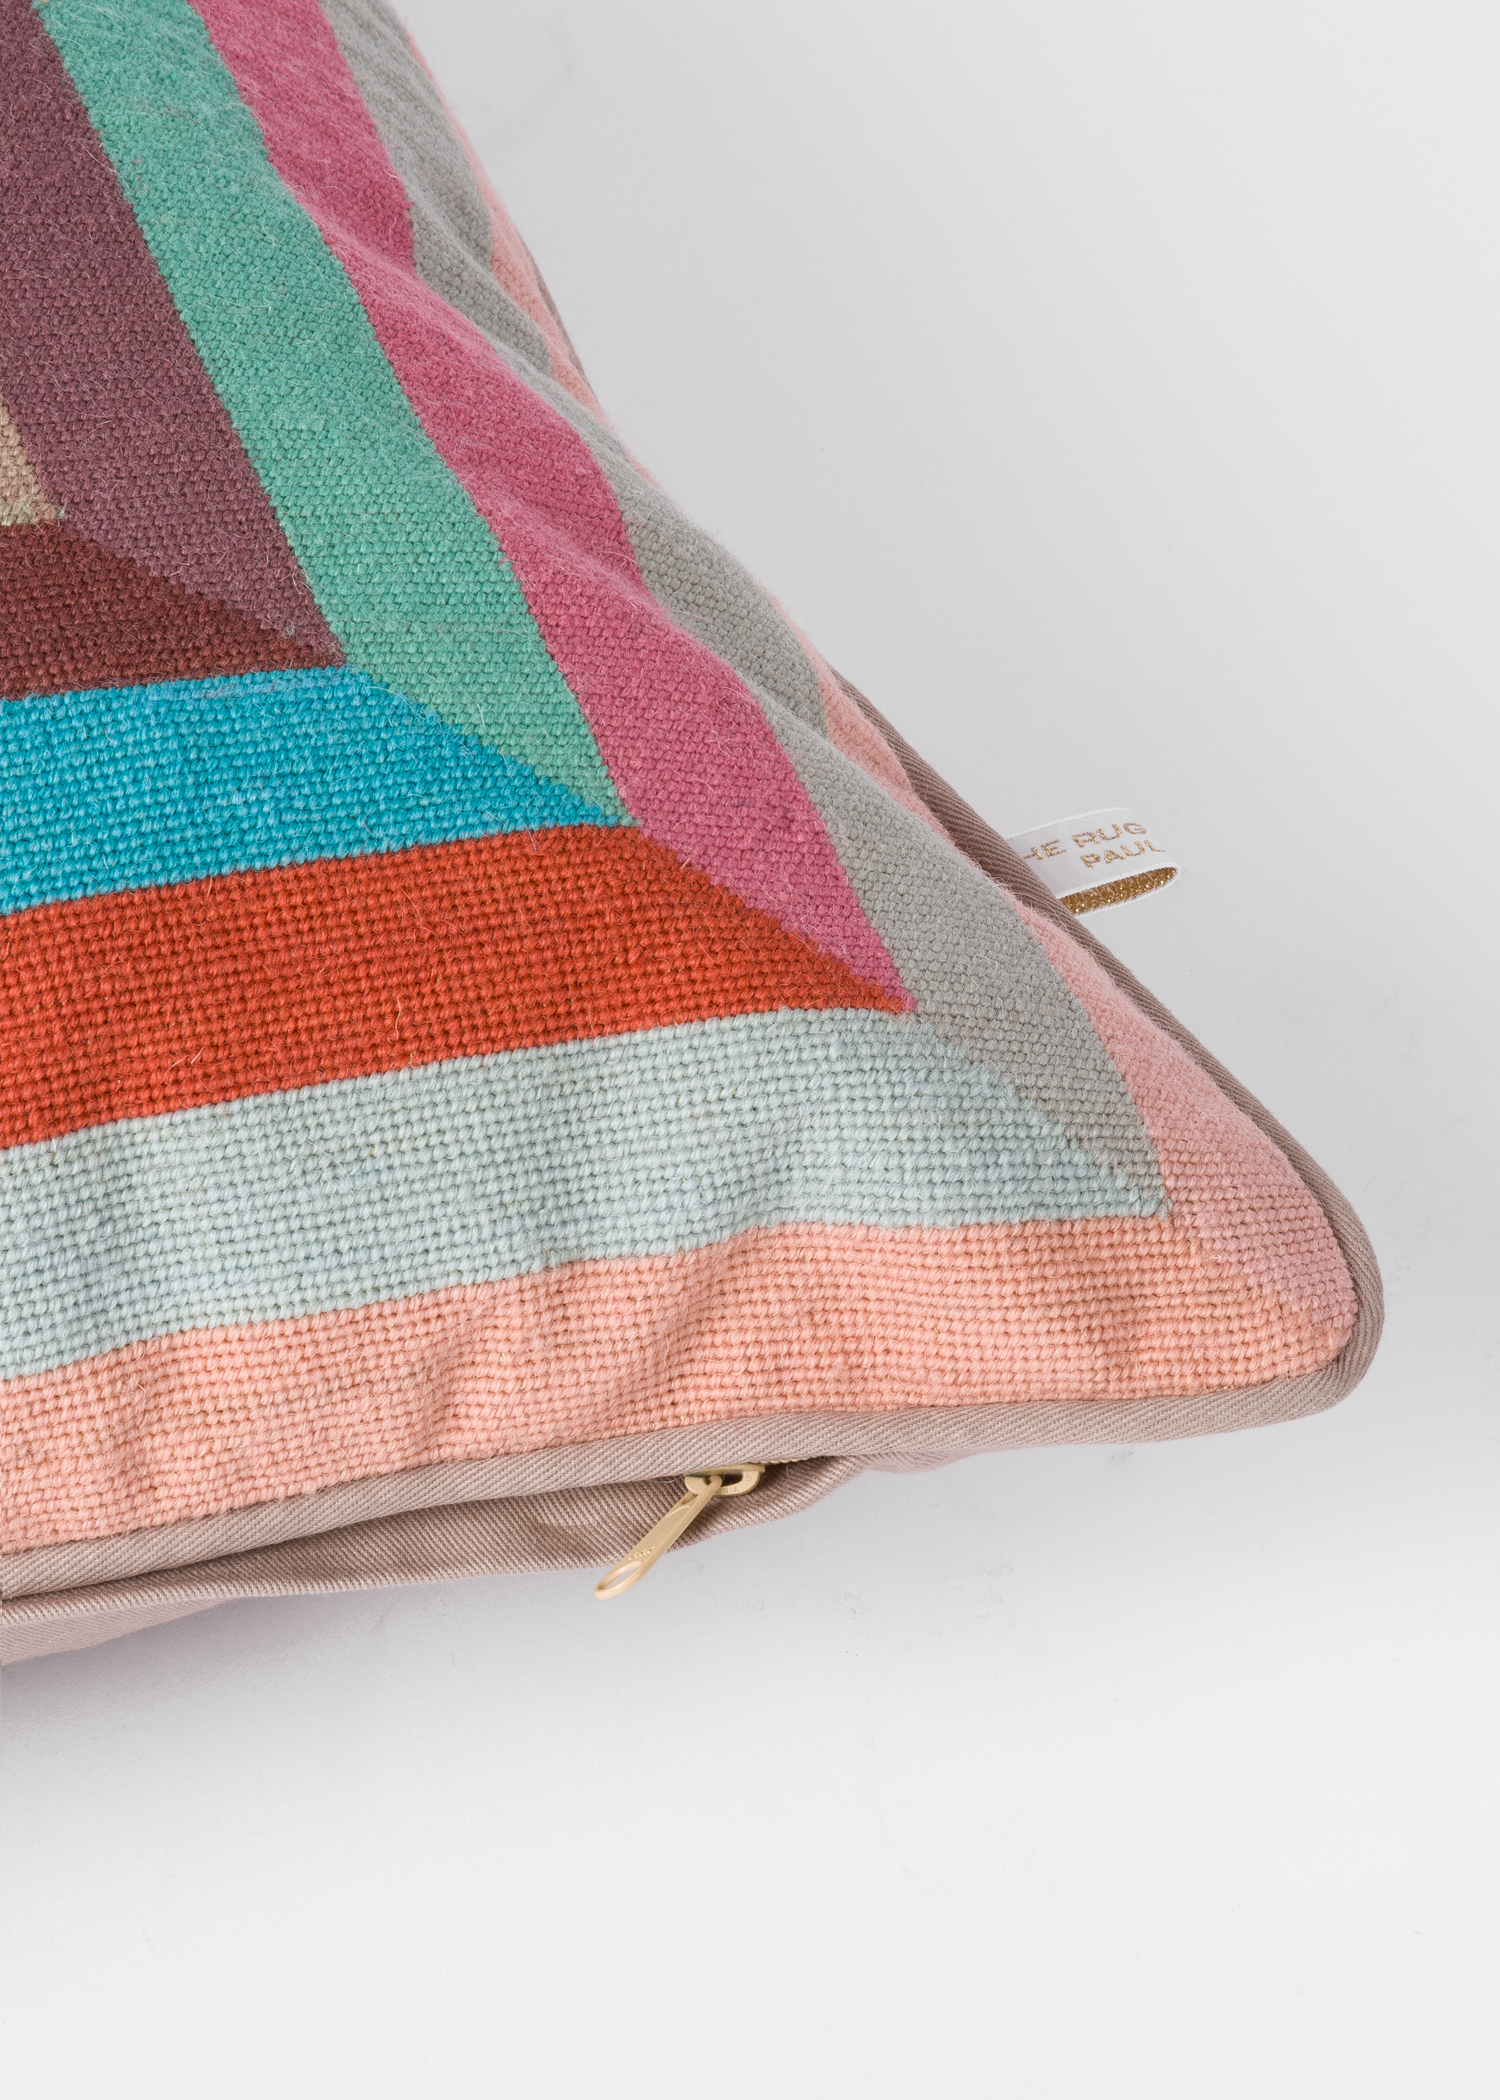 Paul Smith For The Rug Company Prism Light Grey Cushion